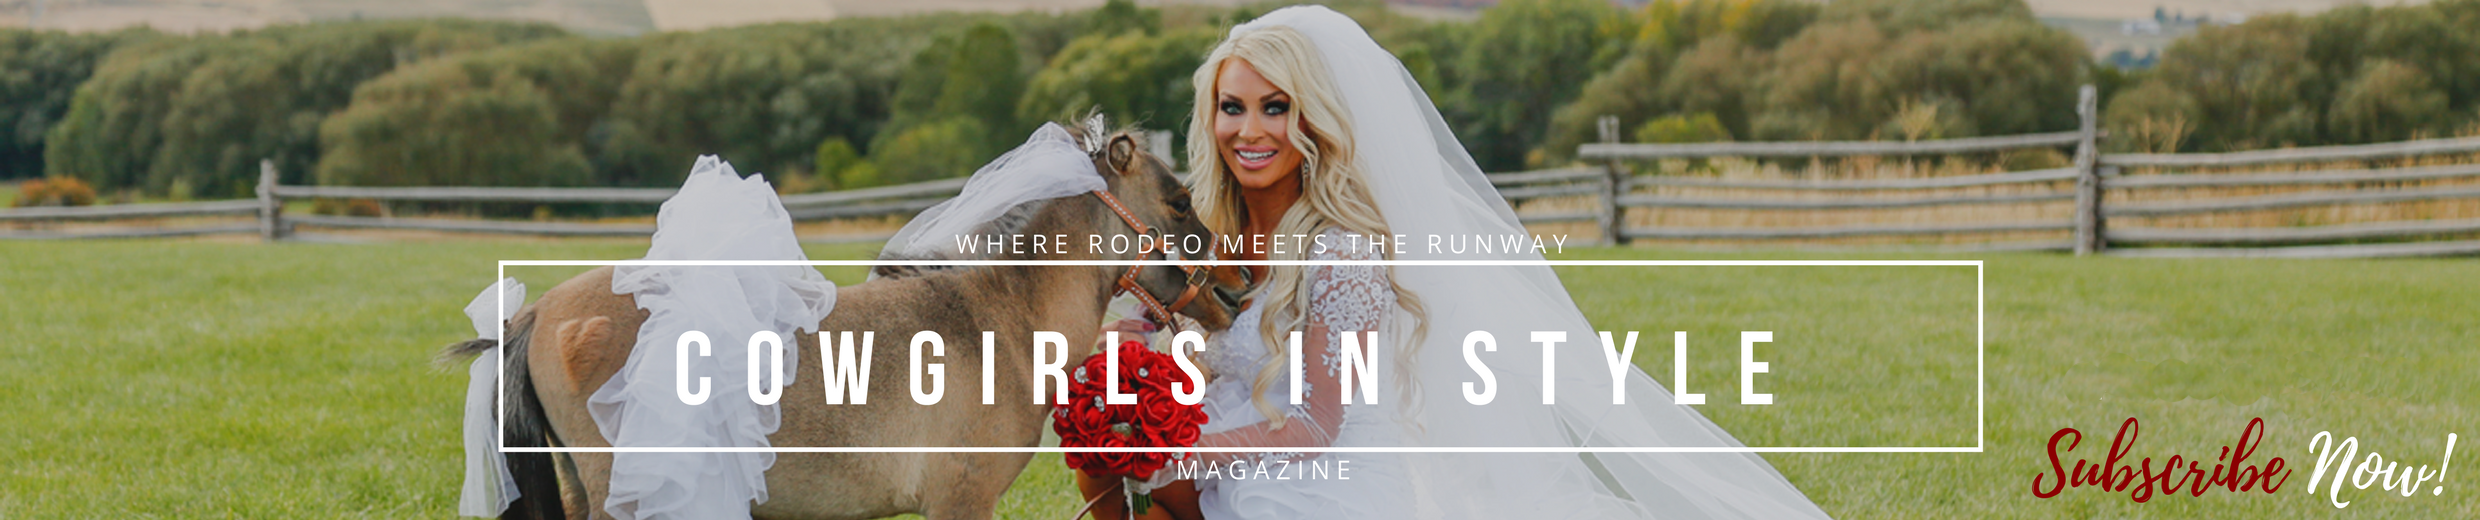 Digital Magazine Access! - Cowgirls In Style Magazine